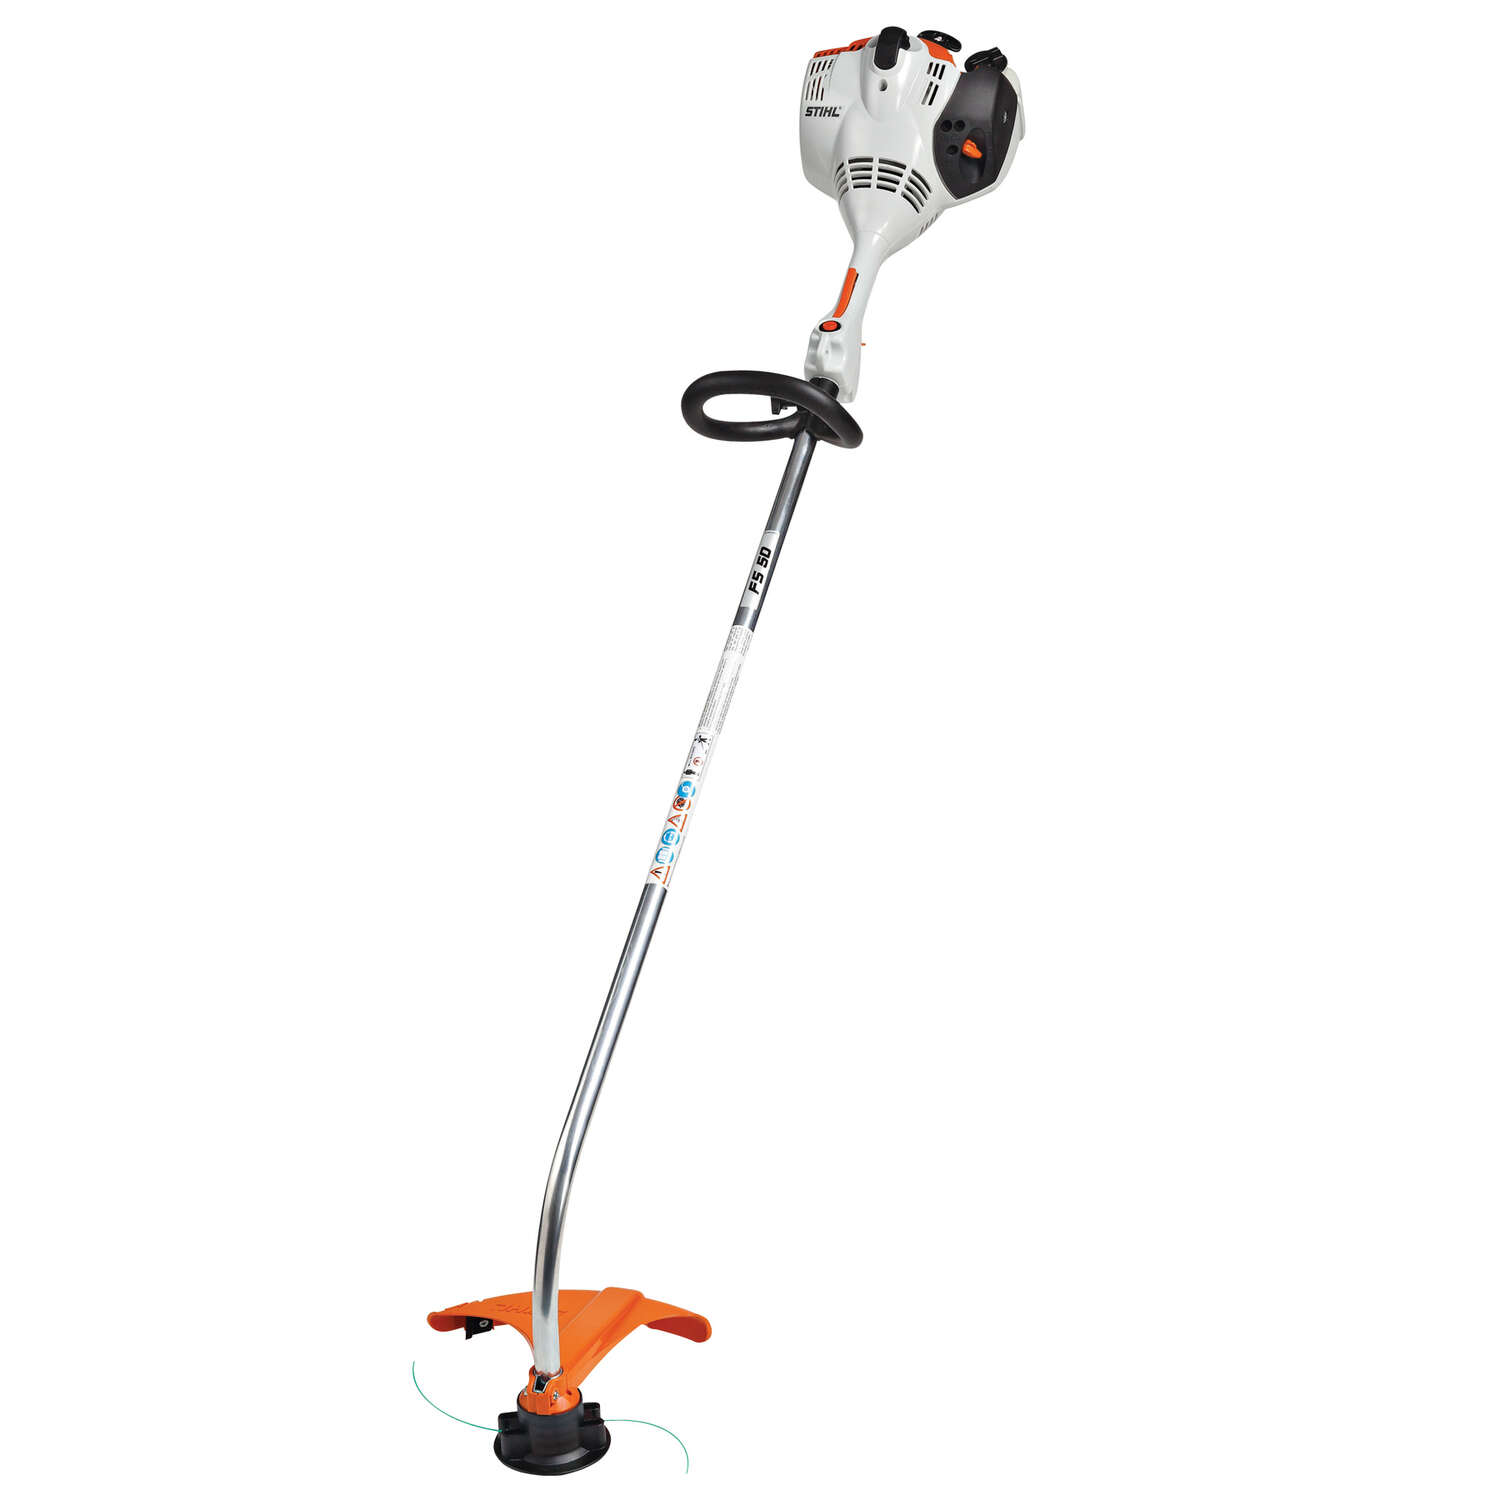 STIHL  FS 50 C-E  16.5 in. Gas  String Trimmer